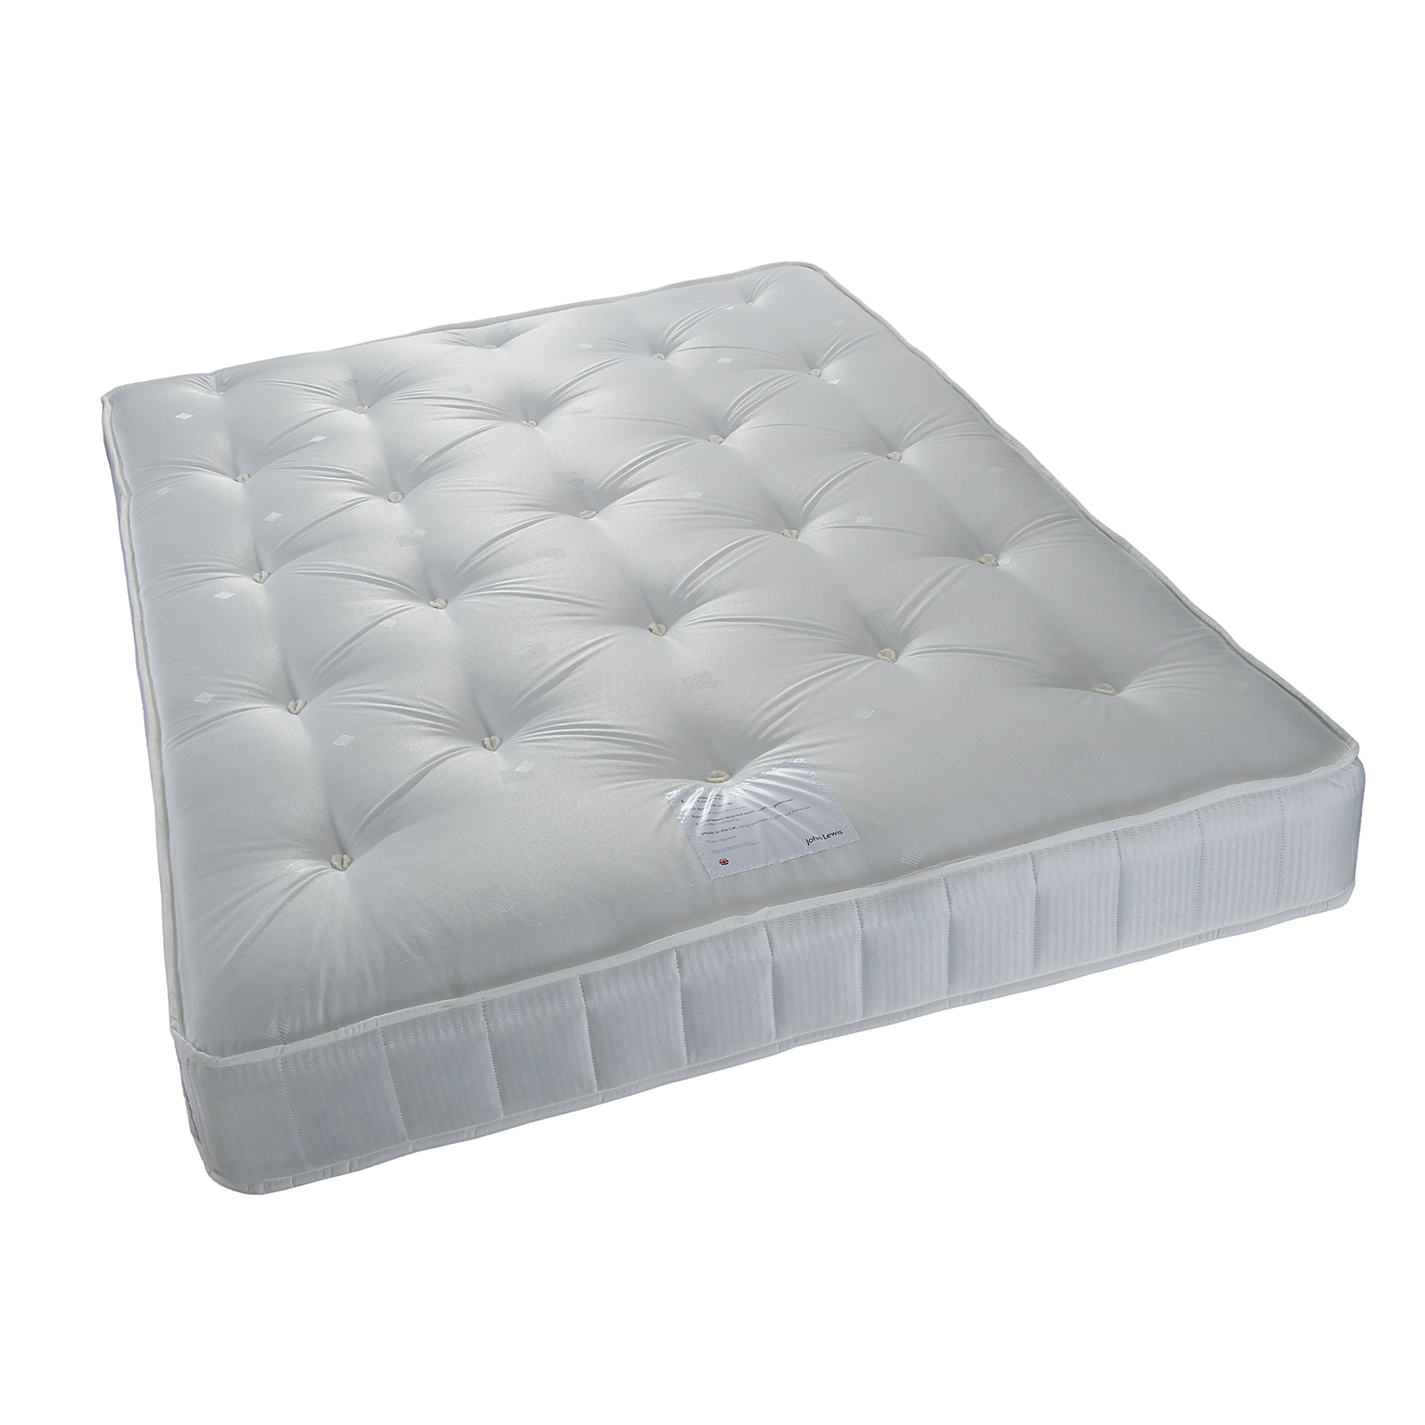 John Lewis Essentials Collection Cosy Comfort 325 Open Spring Mattress Medium Double Online